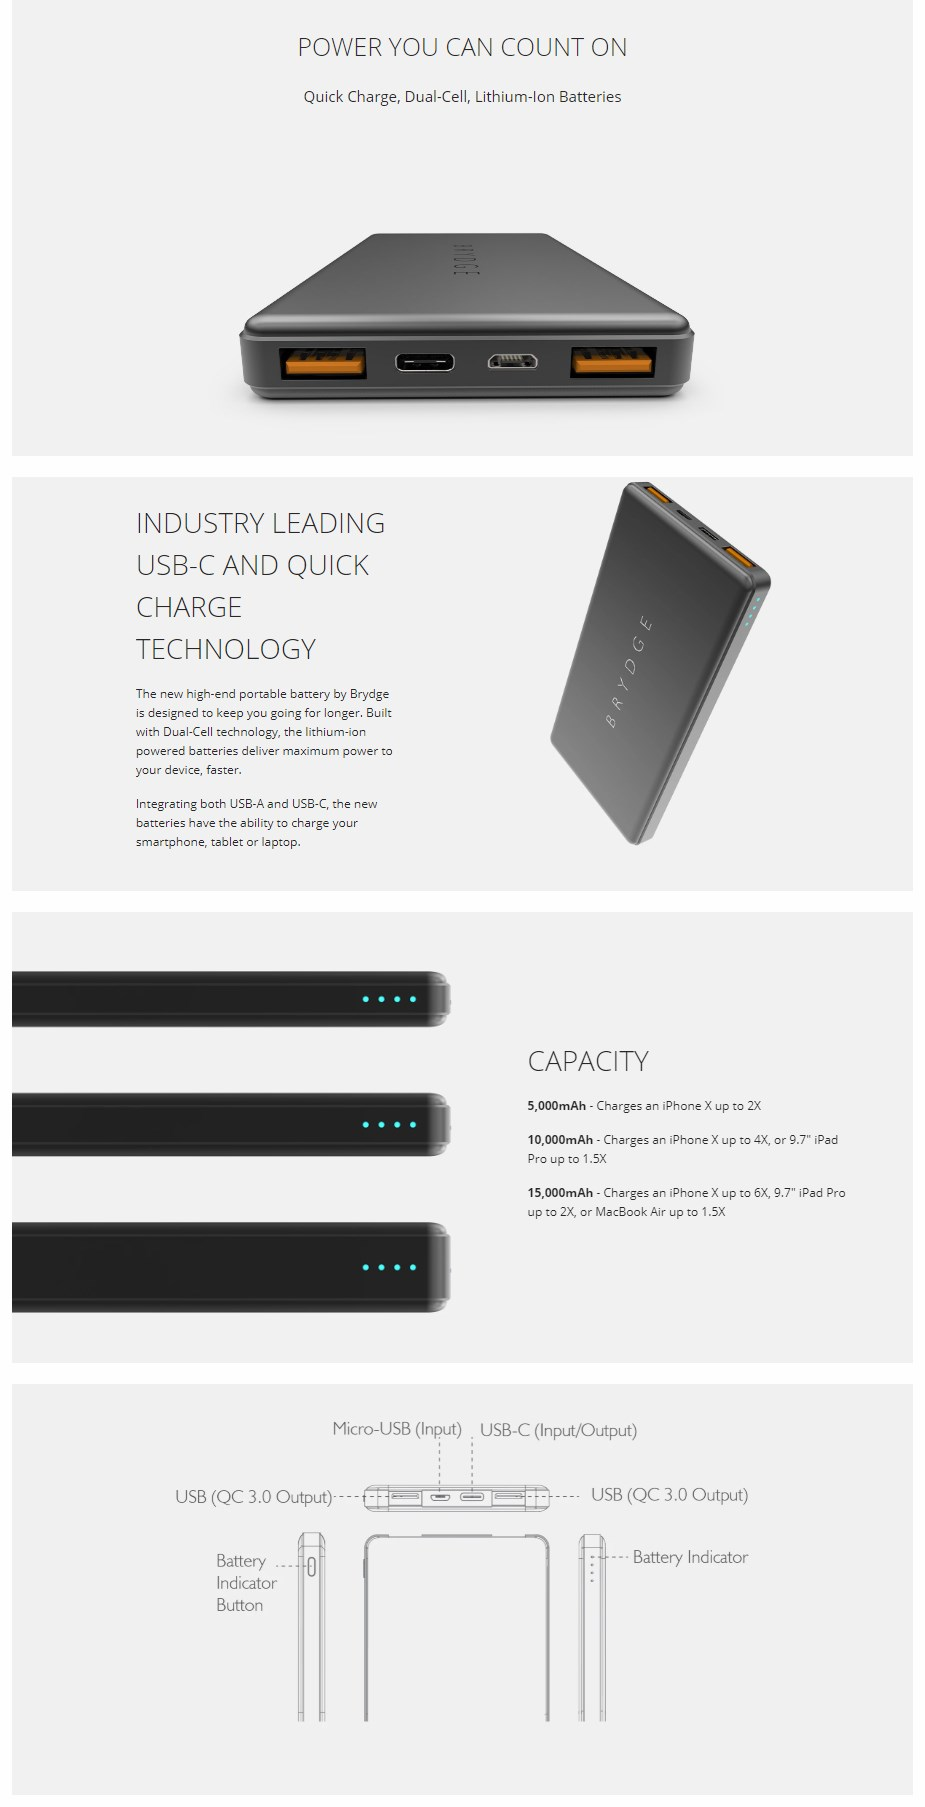 Brydge 10,000 mAh USB/USB-C Portable Power Bank - Overview 1